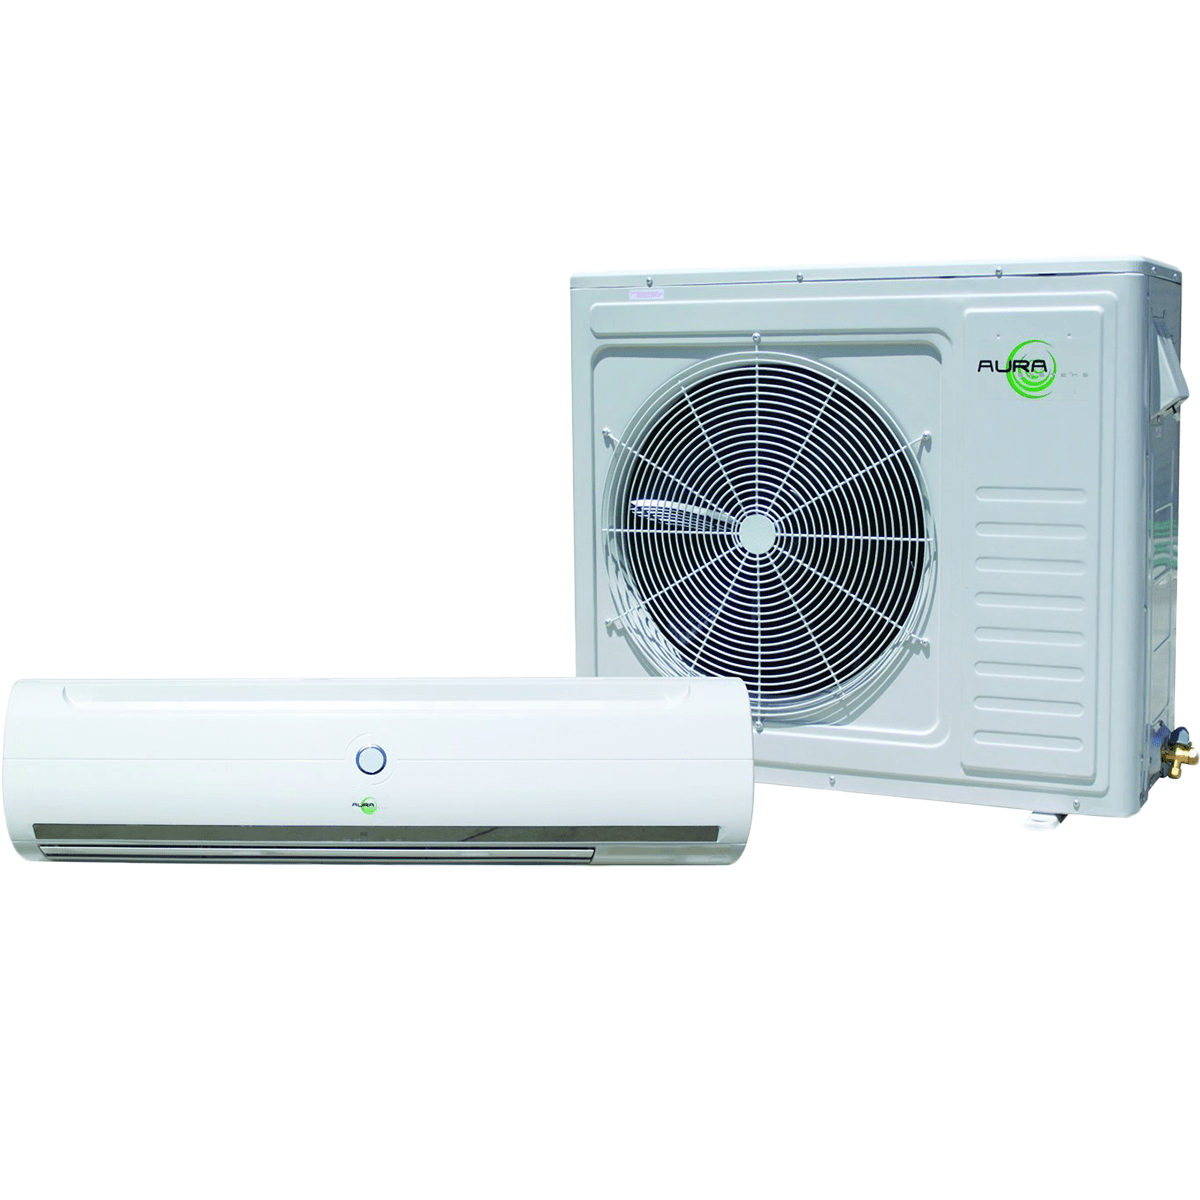 Aura Systems 36,000 Btu Fast Connect Mini Split W/ Heat Pump (au-036qc)